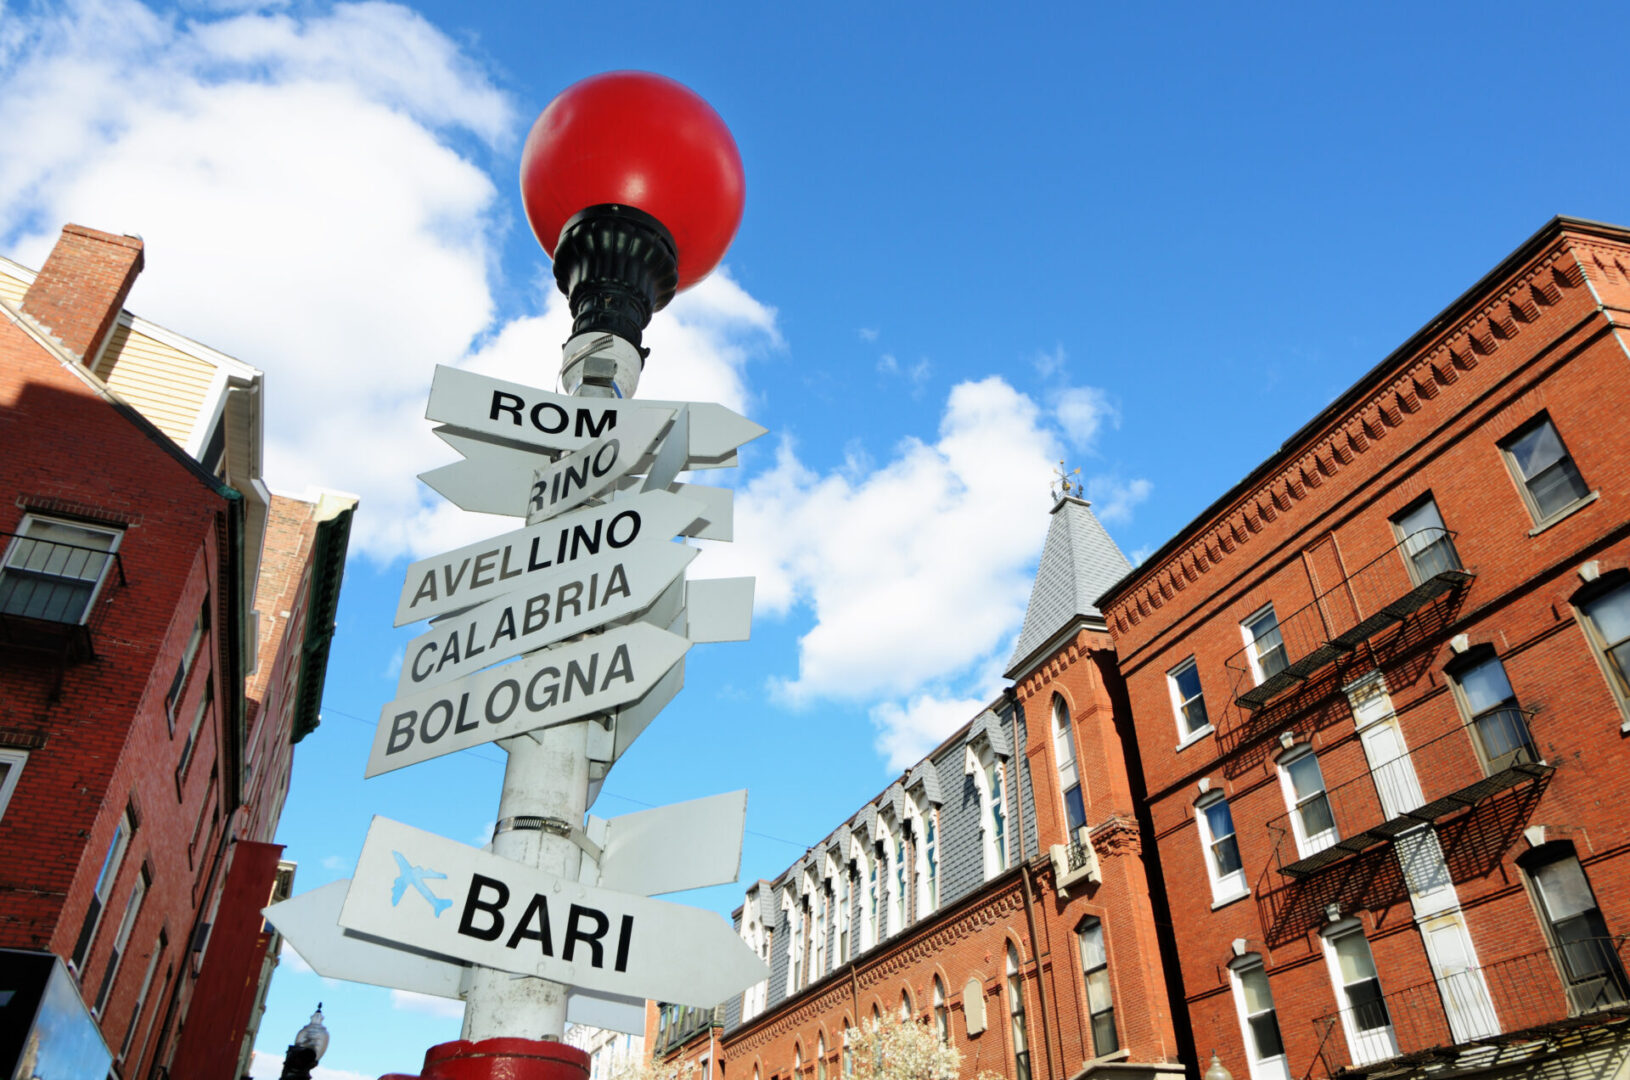 Sign,Depicting,Direction,Of,Different,Italian,Cities,In,The,Little